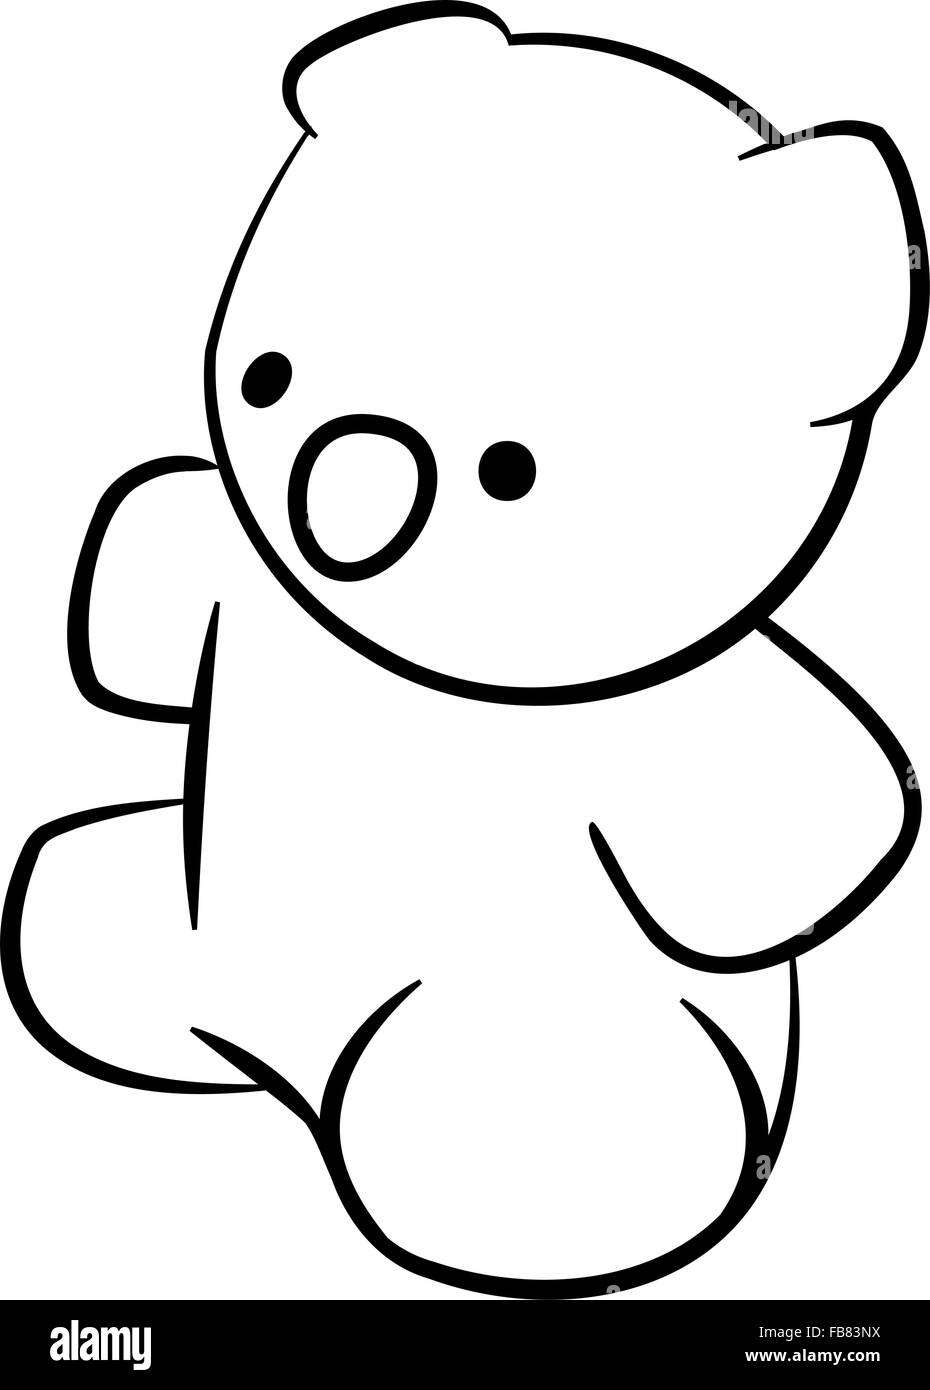 line drawing of teddy bear